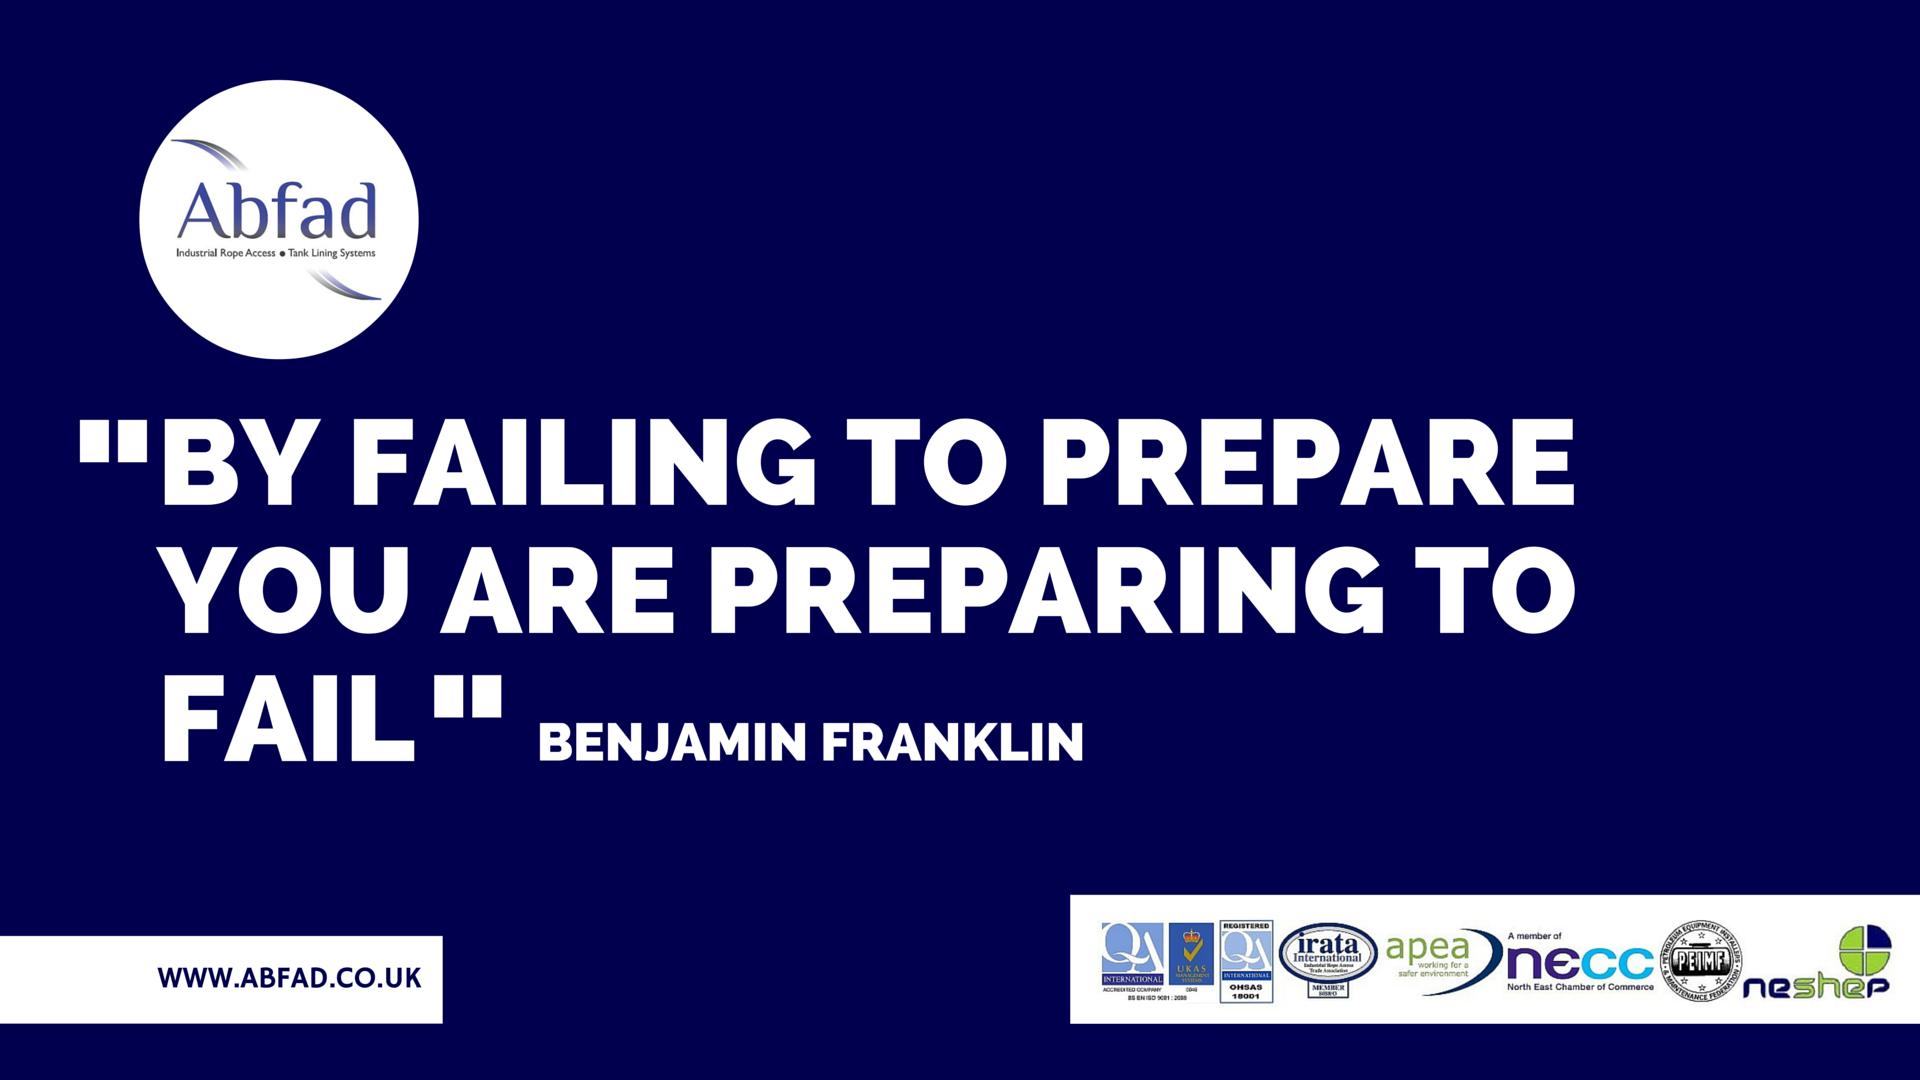 %22By failing to prepare you are preparing to fail%22